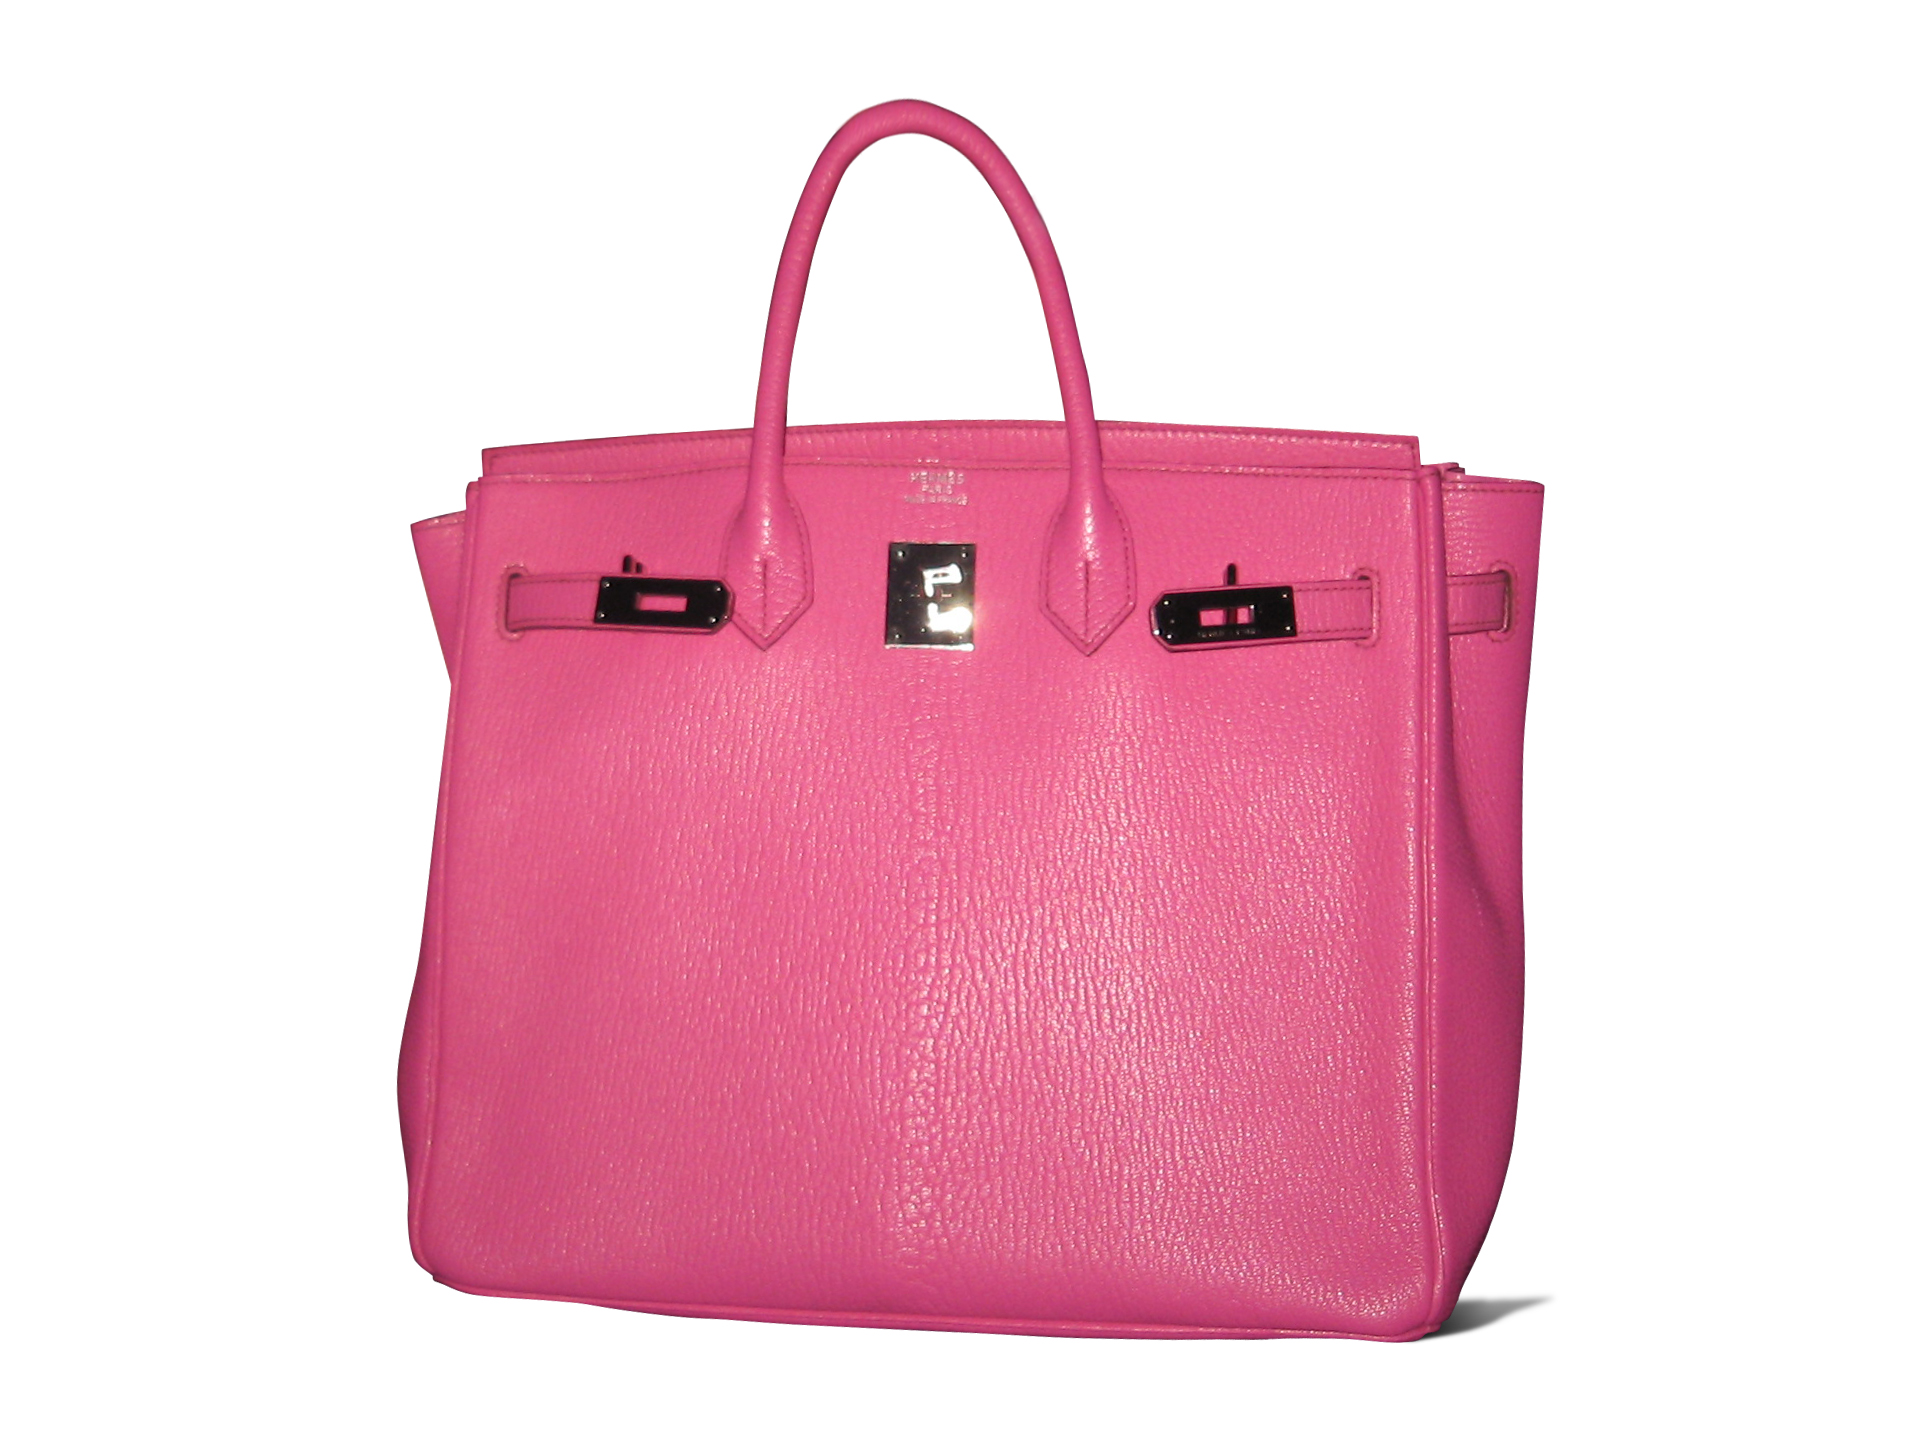 hermes shoulder bags - Birkin bag - Wikipedia, the free encyclopedia